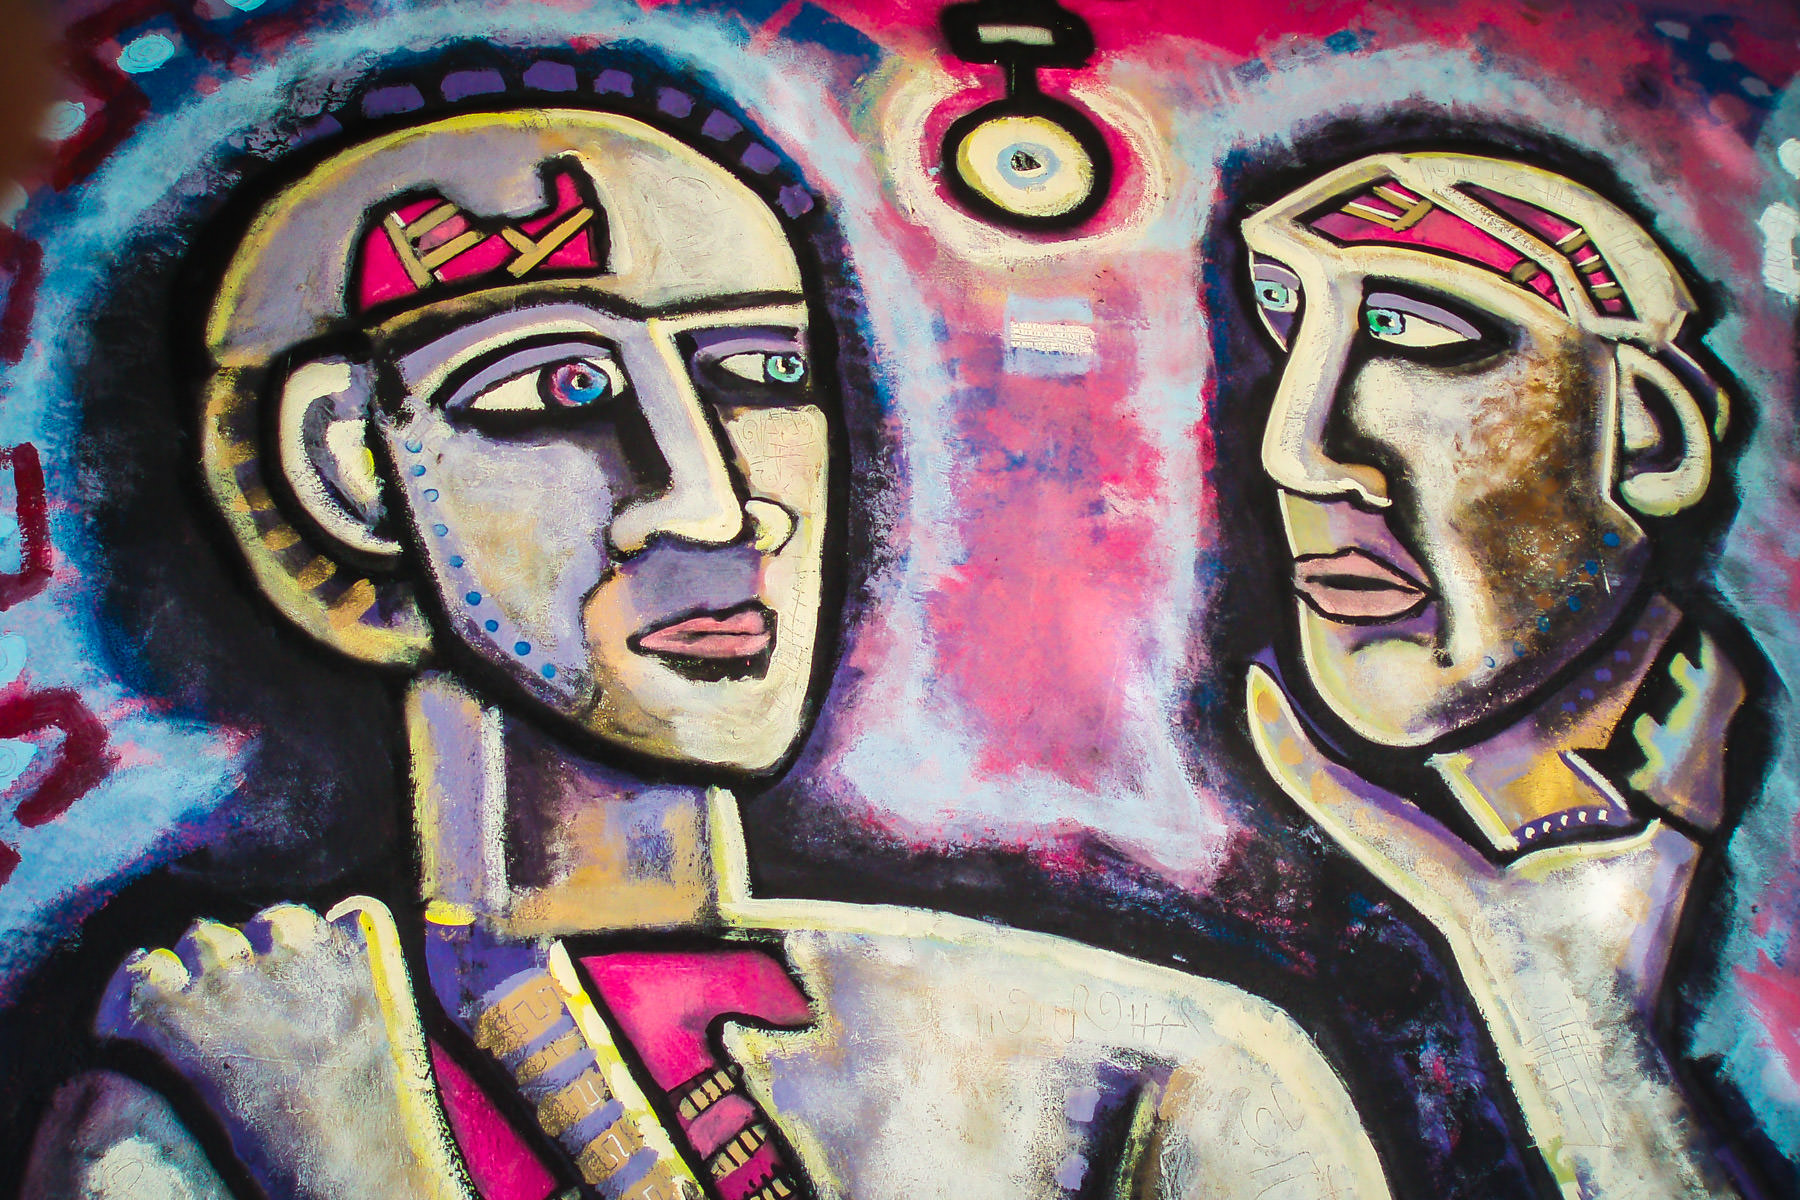 More artwork from the Deep Ellum Good-Latimer Tunnel in Dallas, before it was demolished. You can view my entire photos essay on the Good-Latimer Tunnel's artwork here.